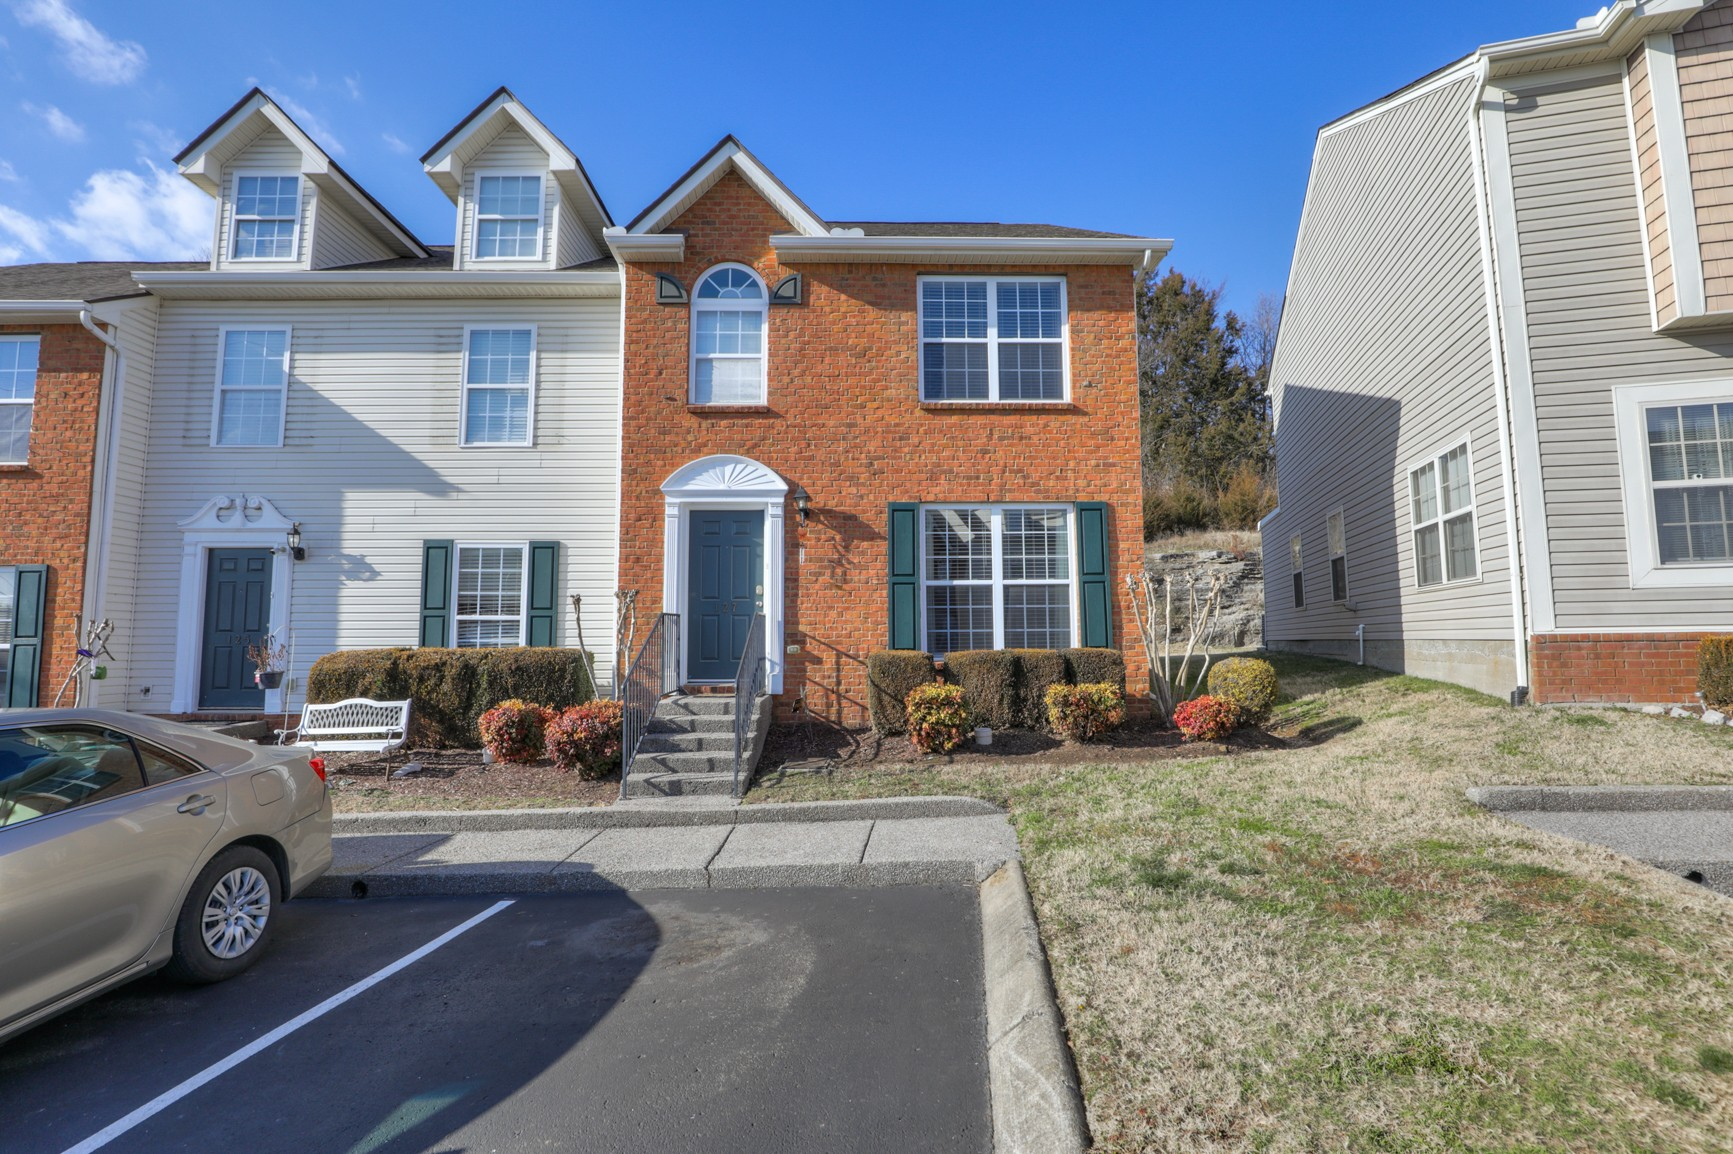 5170 Hickory Hollow Pkwy #127 Property Photo - Antioch, TN real estate listing